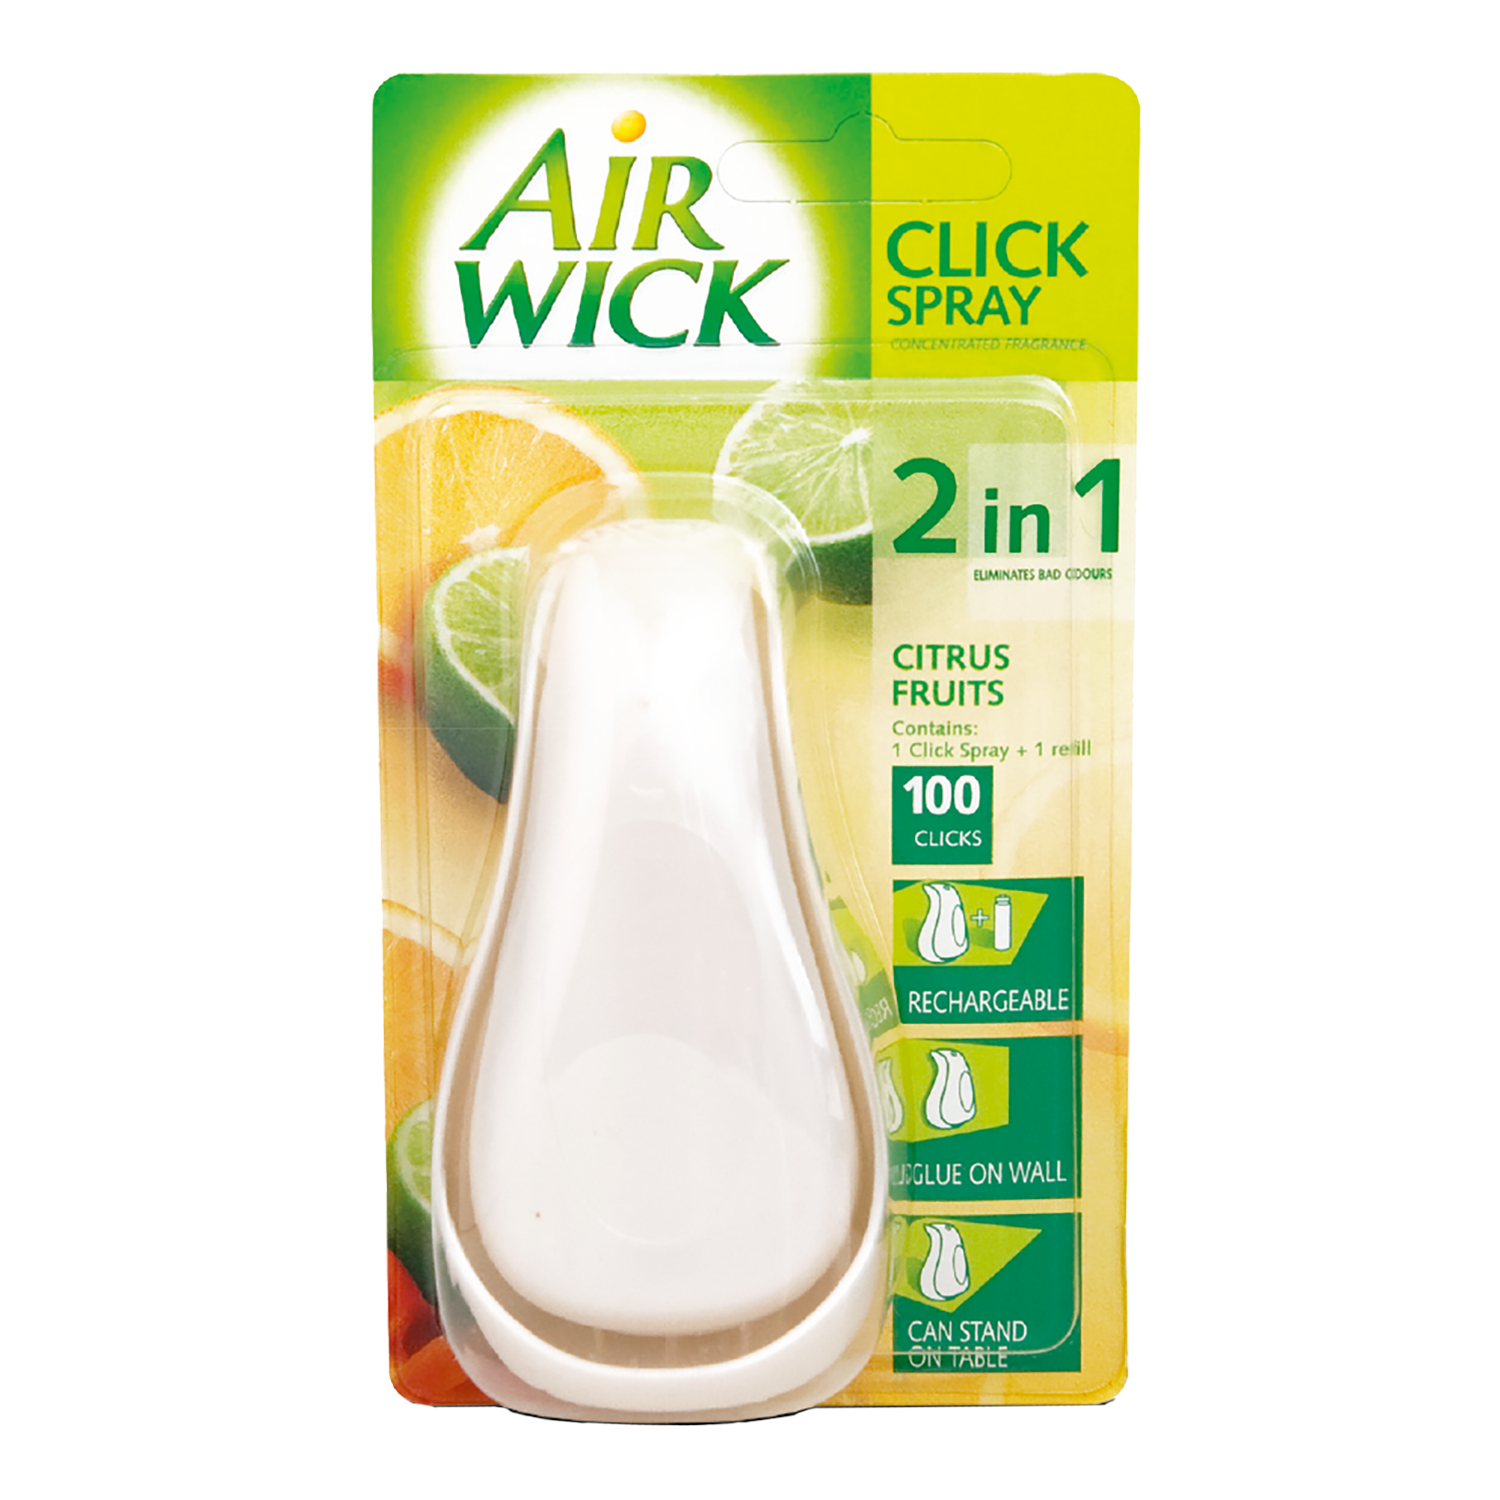 Air Wick Click Spray Starter Kit Citrus Fruits 15 ml